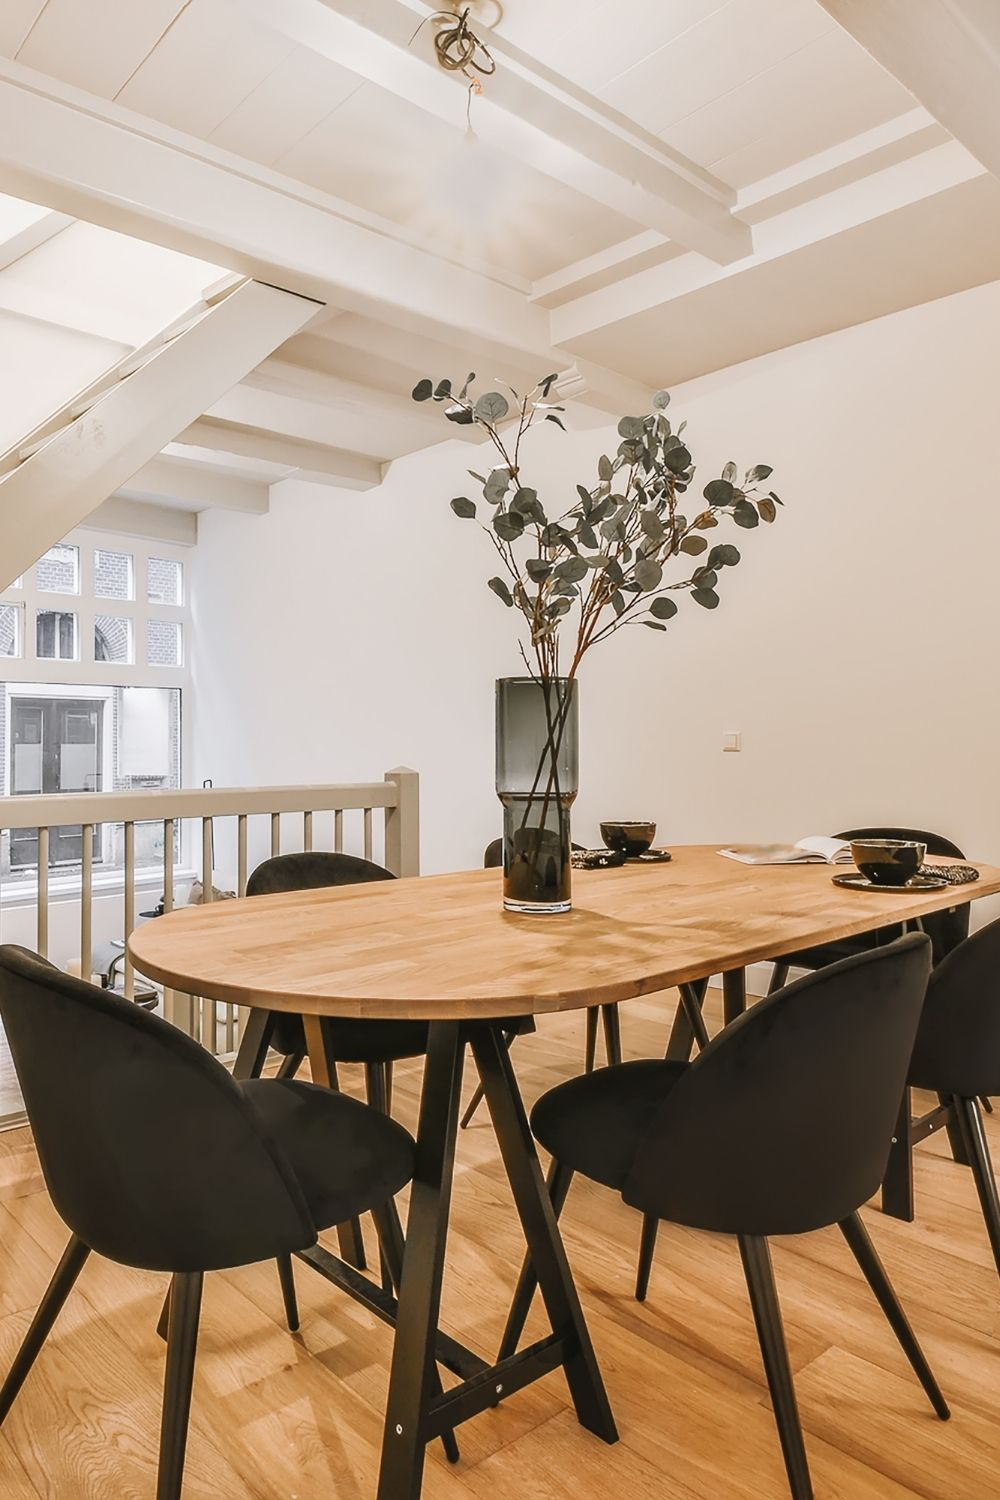 Oval Table Inspiration 8 Favourites, Oval Dining Room Table